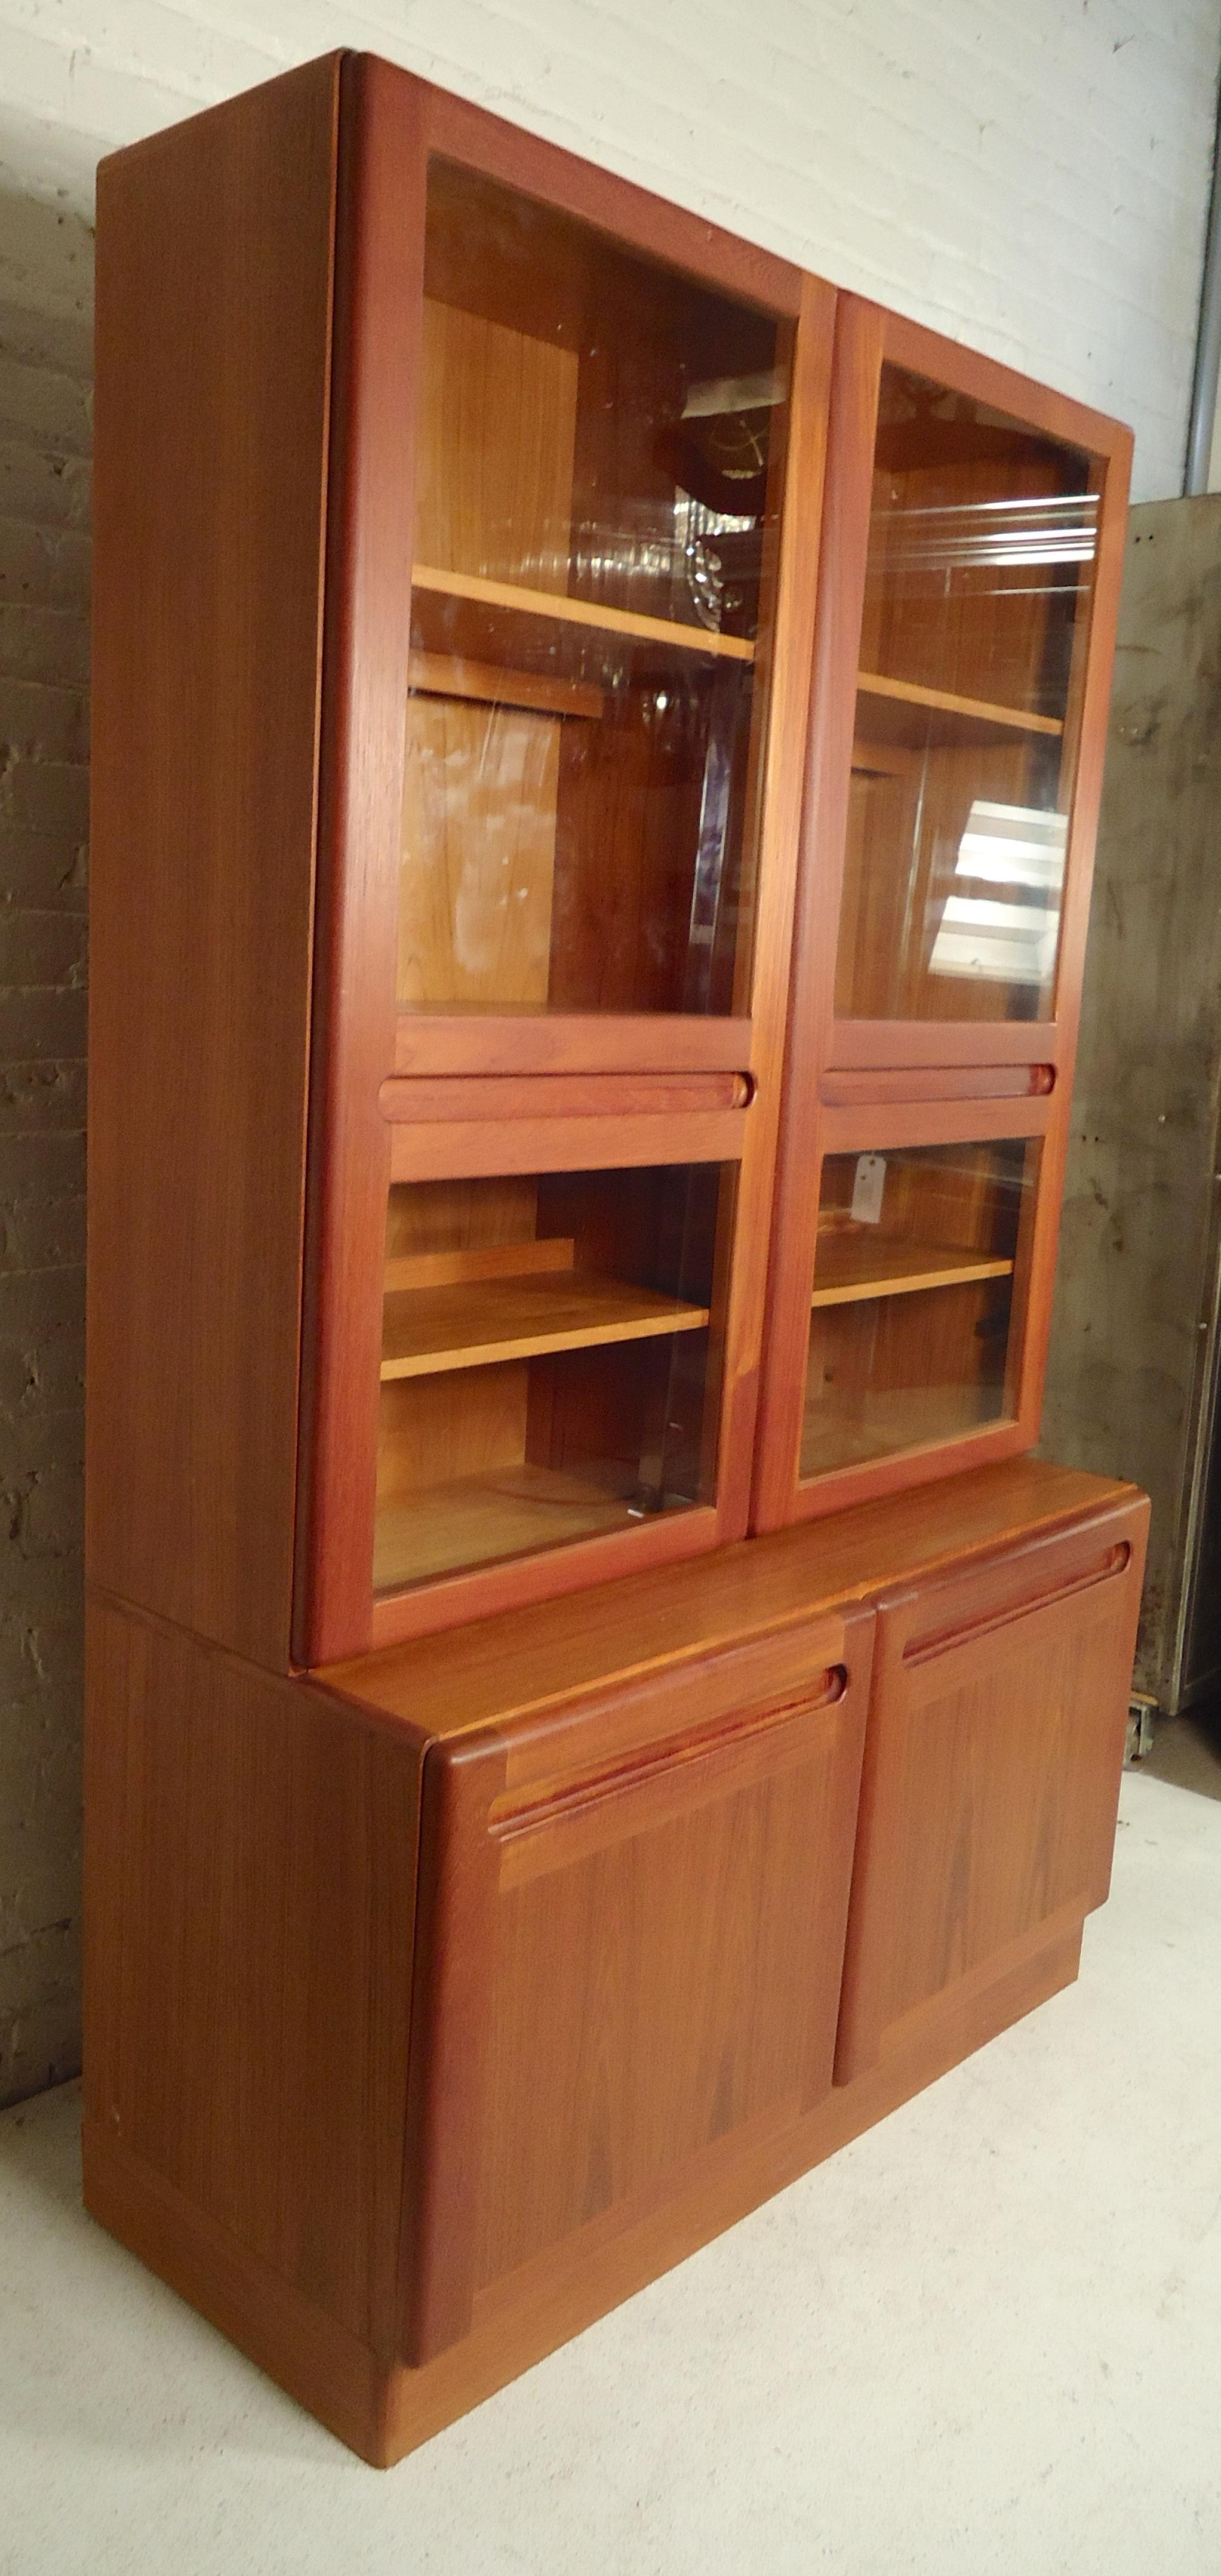 Stacked Bookcase With Cabinet Base. Glass Doors With Sculpted Handles And  Recessed Lighting Inside.